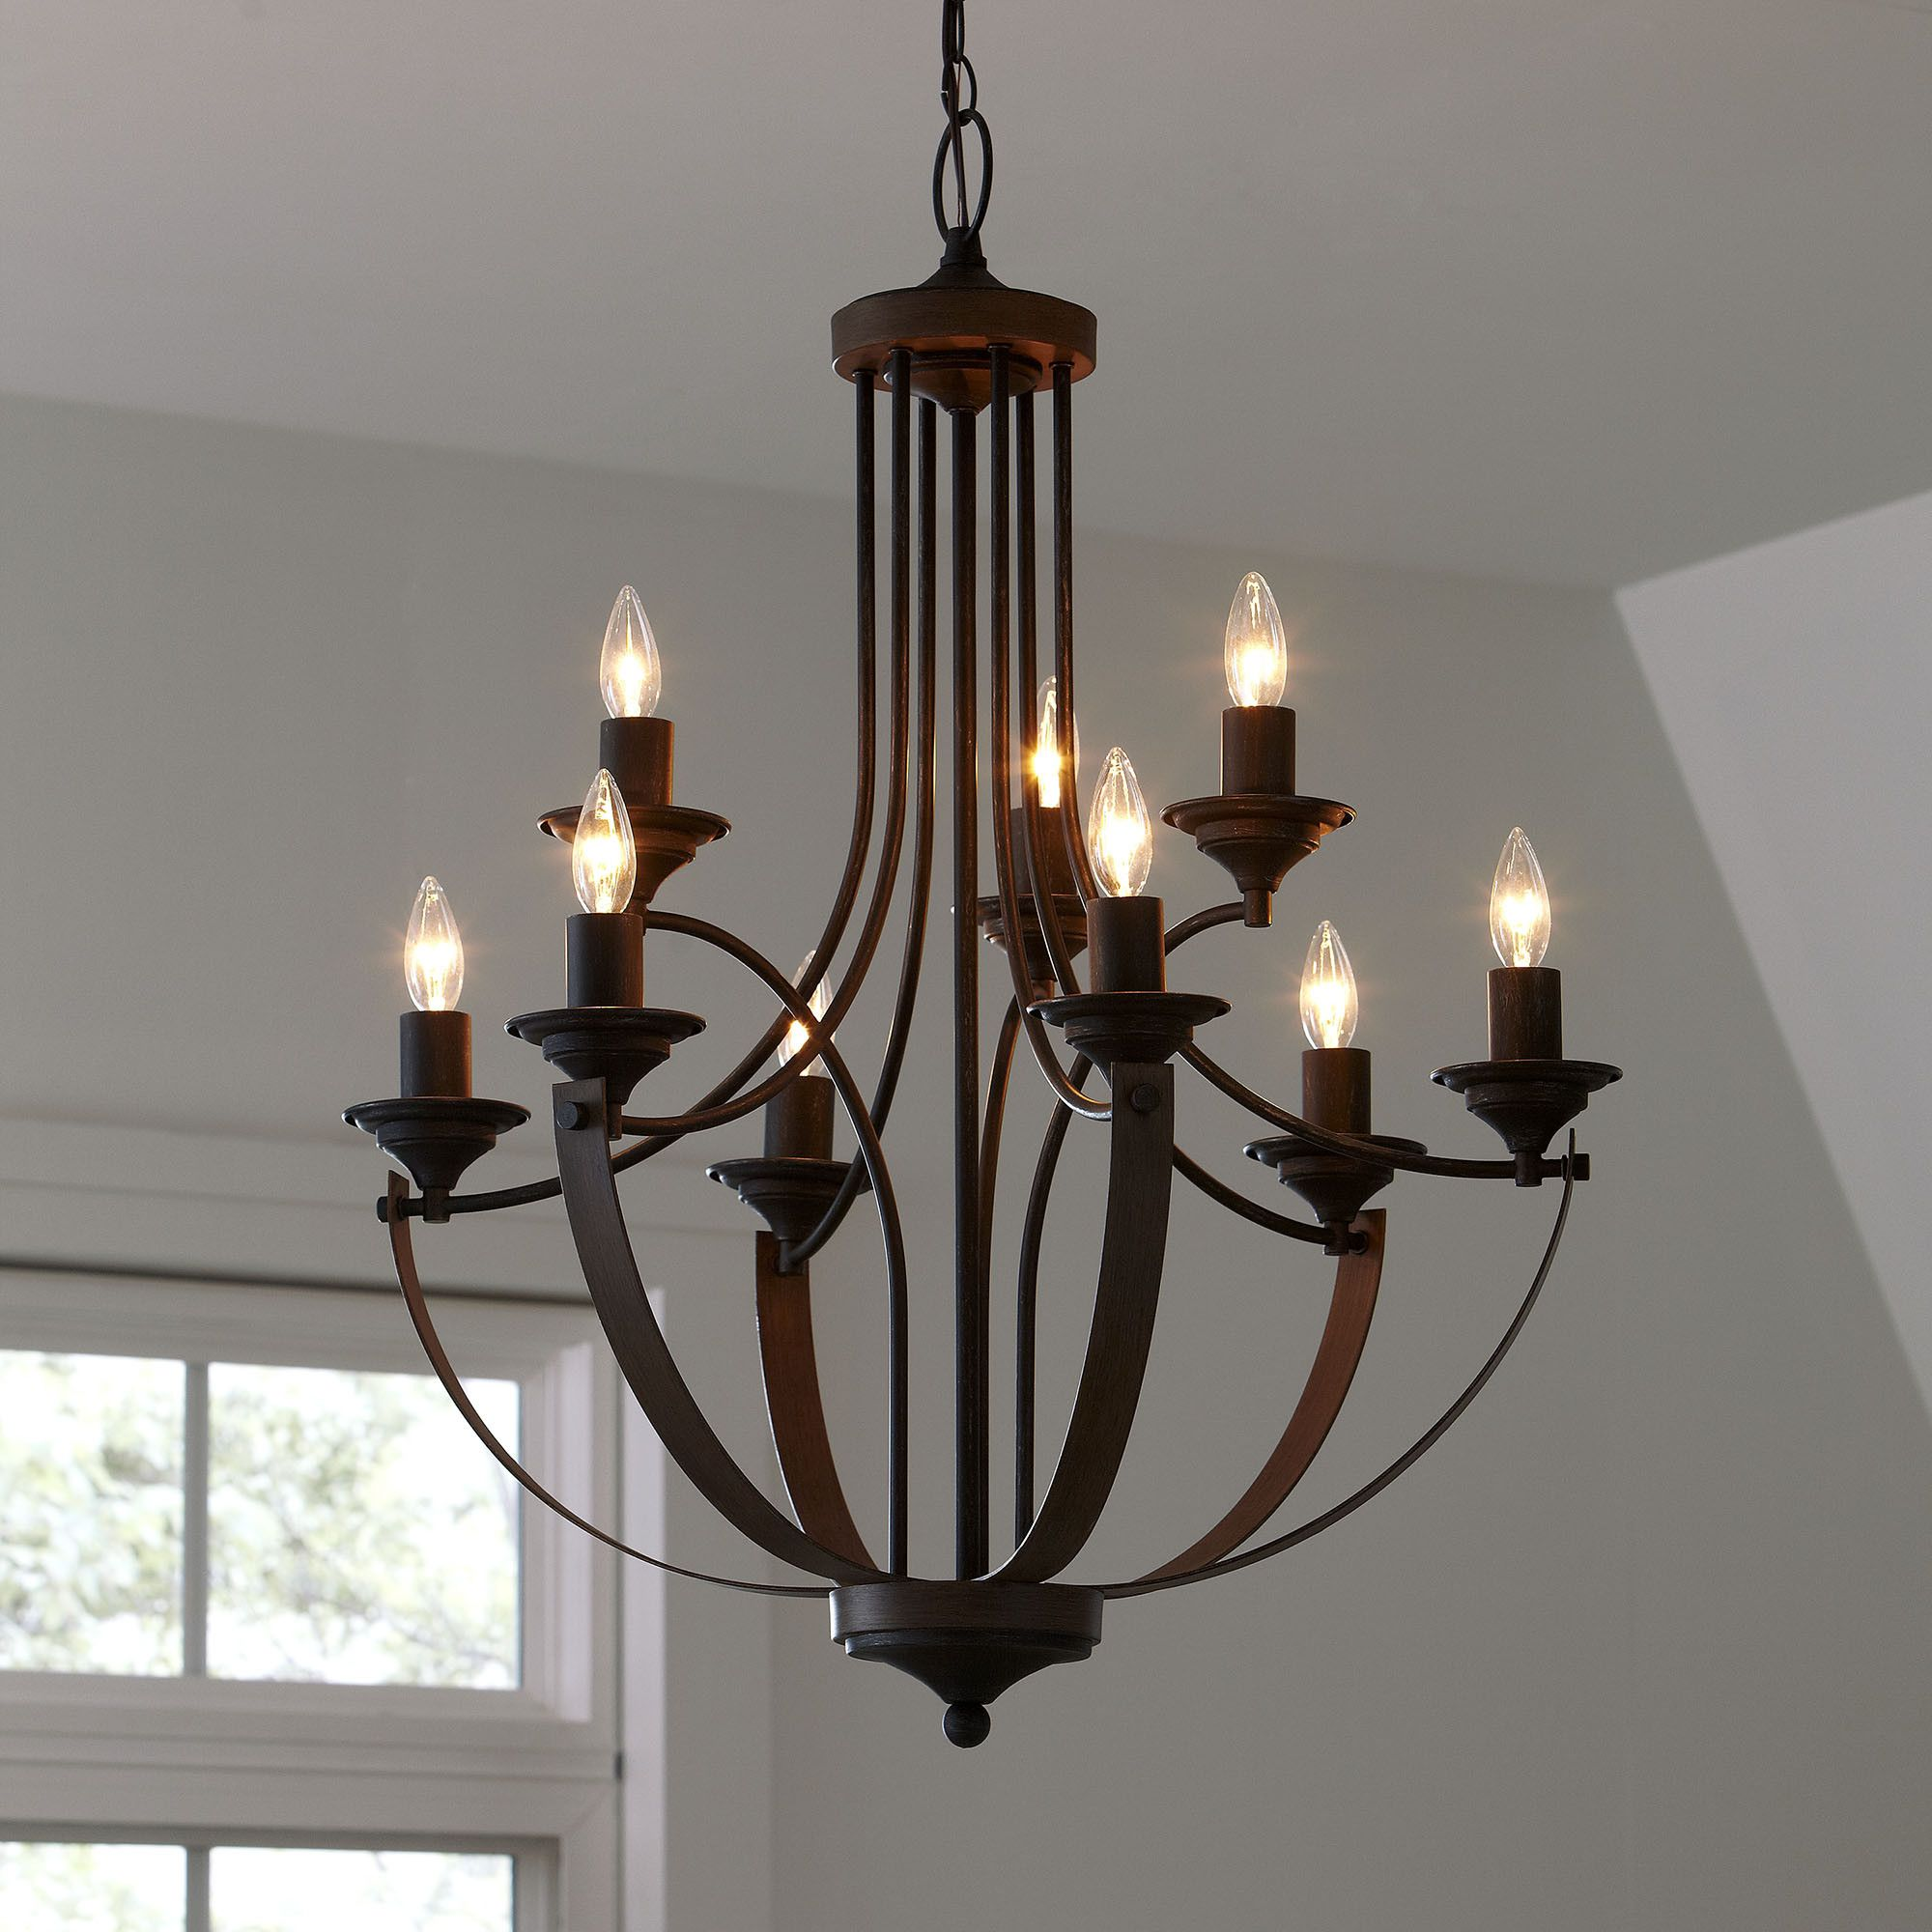 Camilla Chandelier Pure Rustic Elegance This Candelabra Style